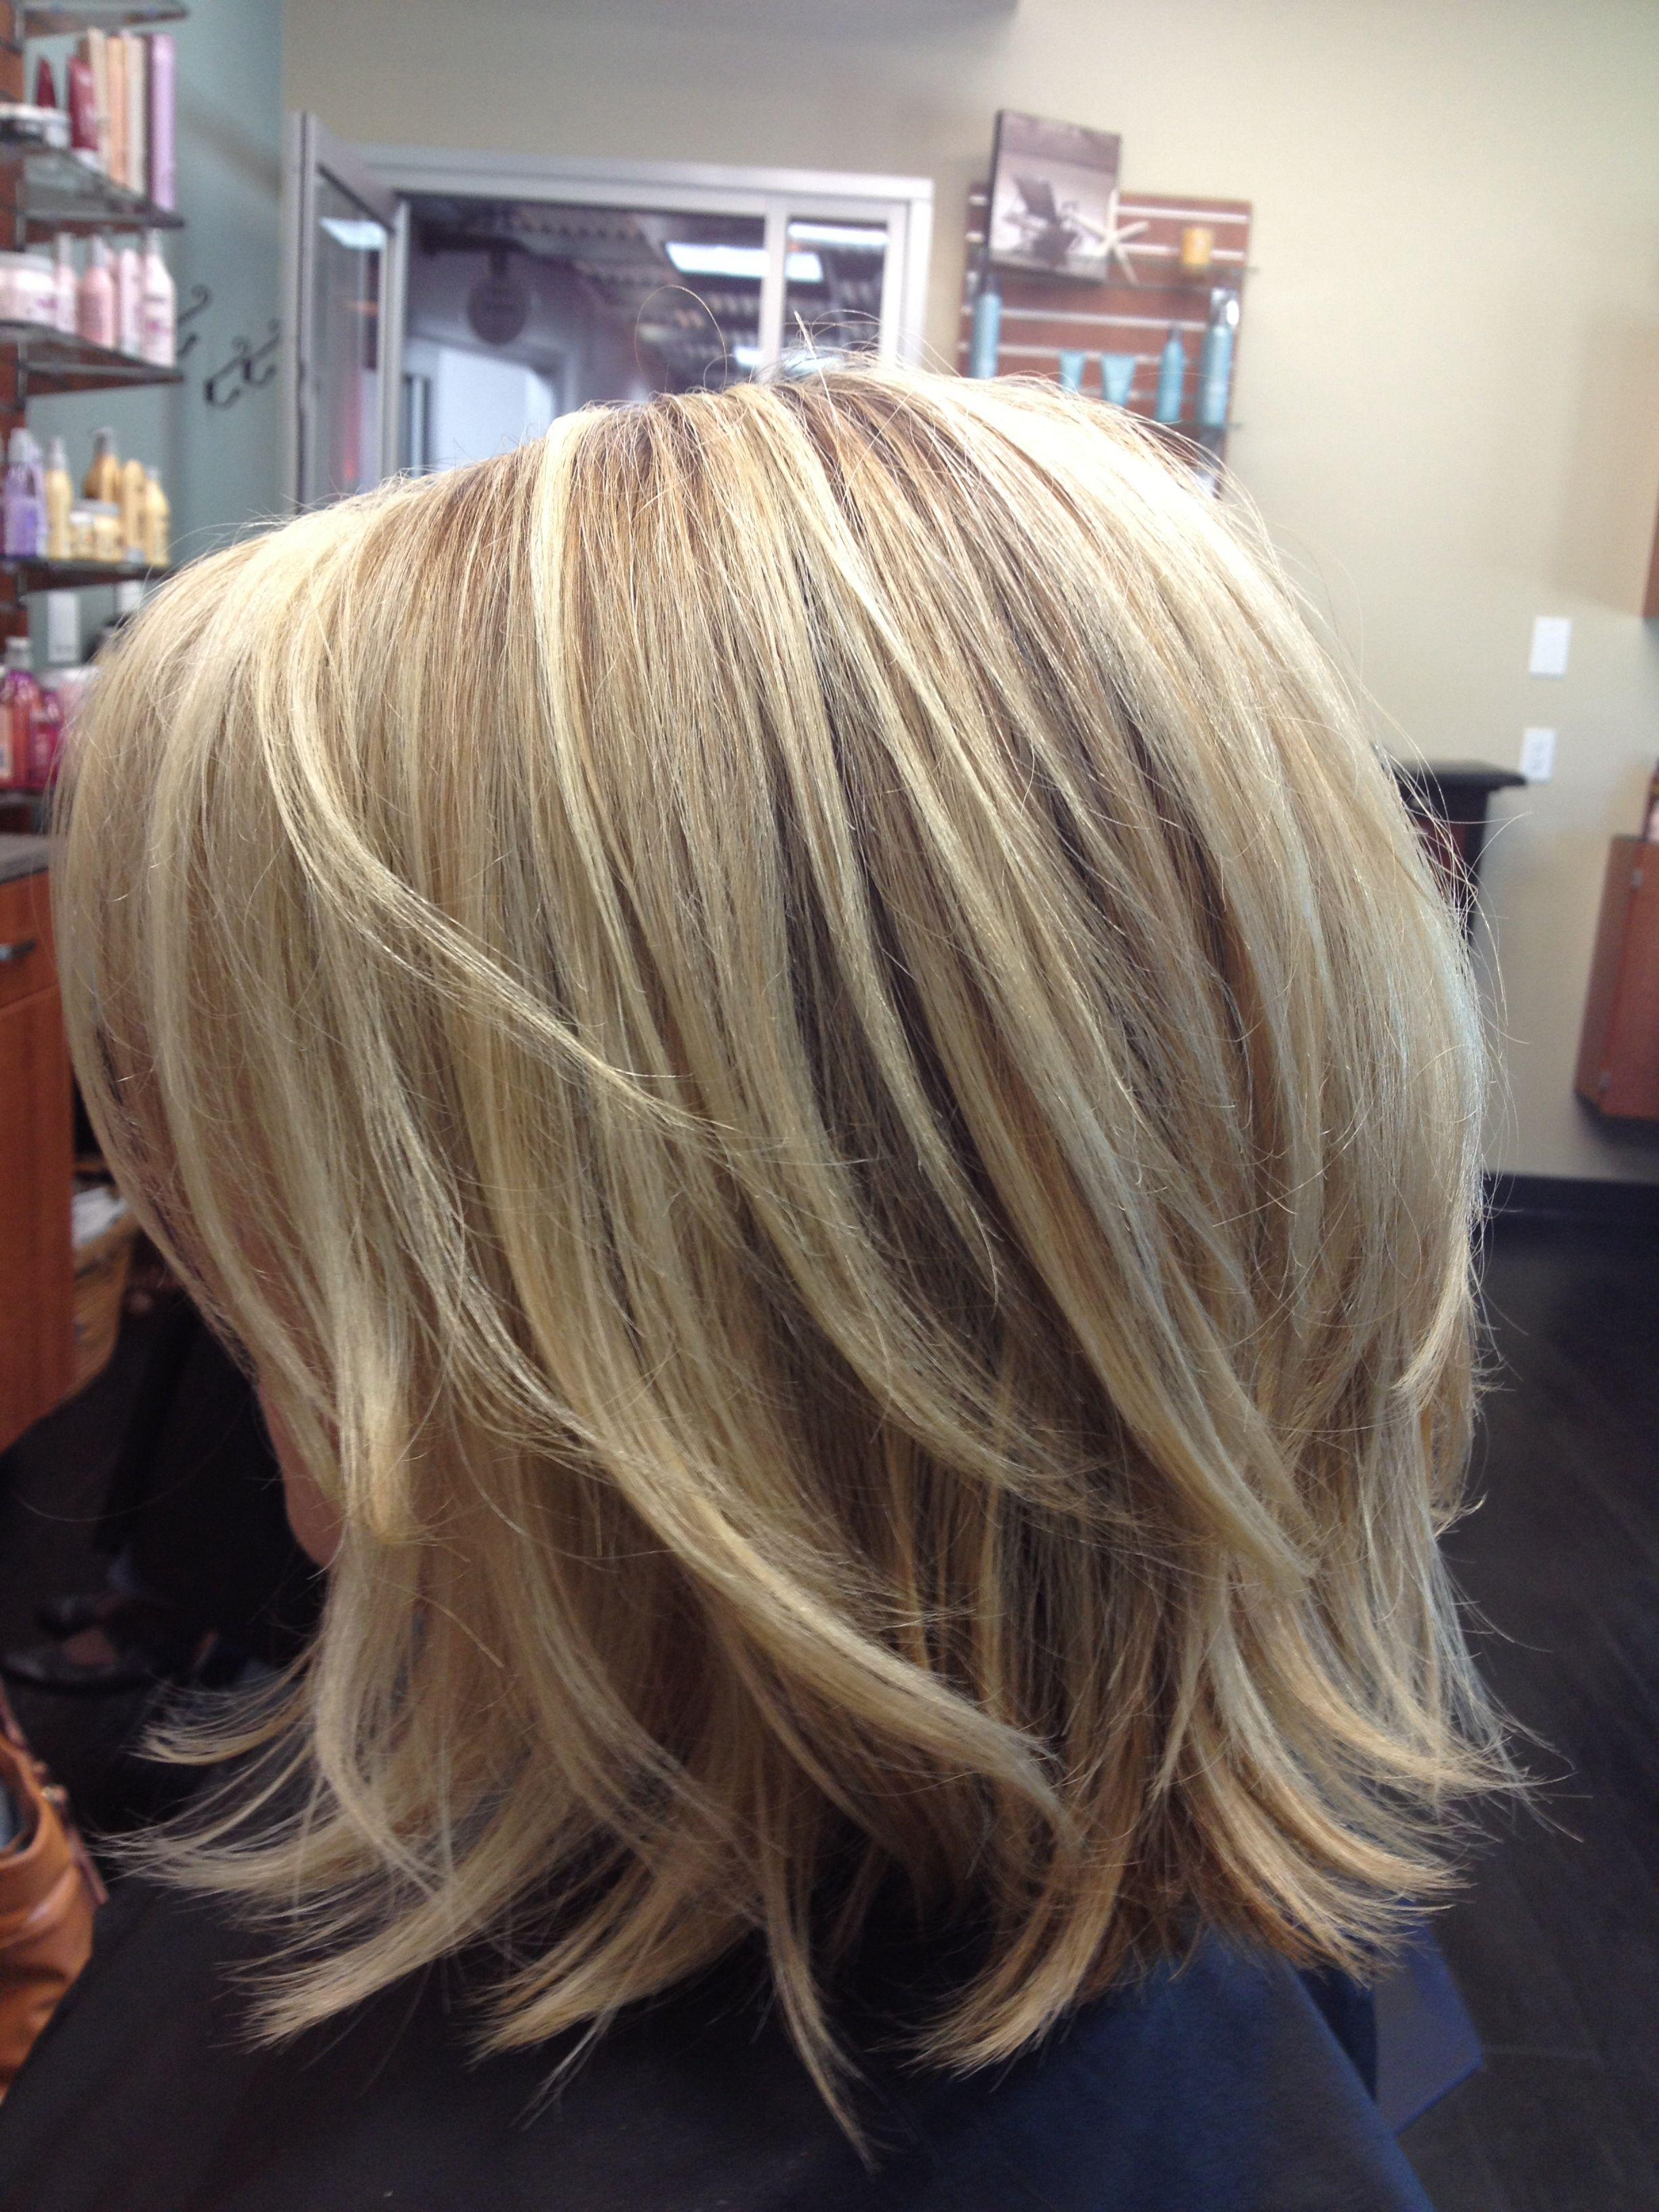 14 Trendy Medium Layered Hairstyles In 2018 | Hair | Pinterest With Short To Mid Length Layered Hairstyles (View 3 of 25)